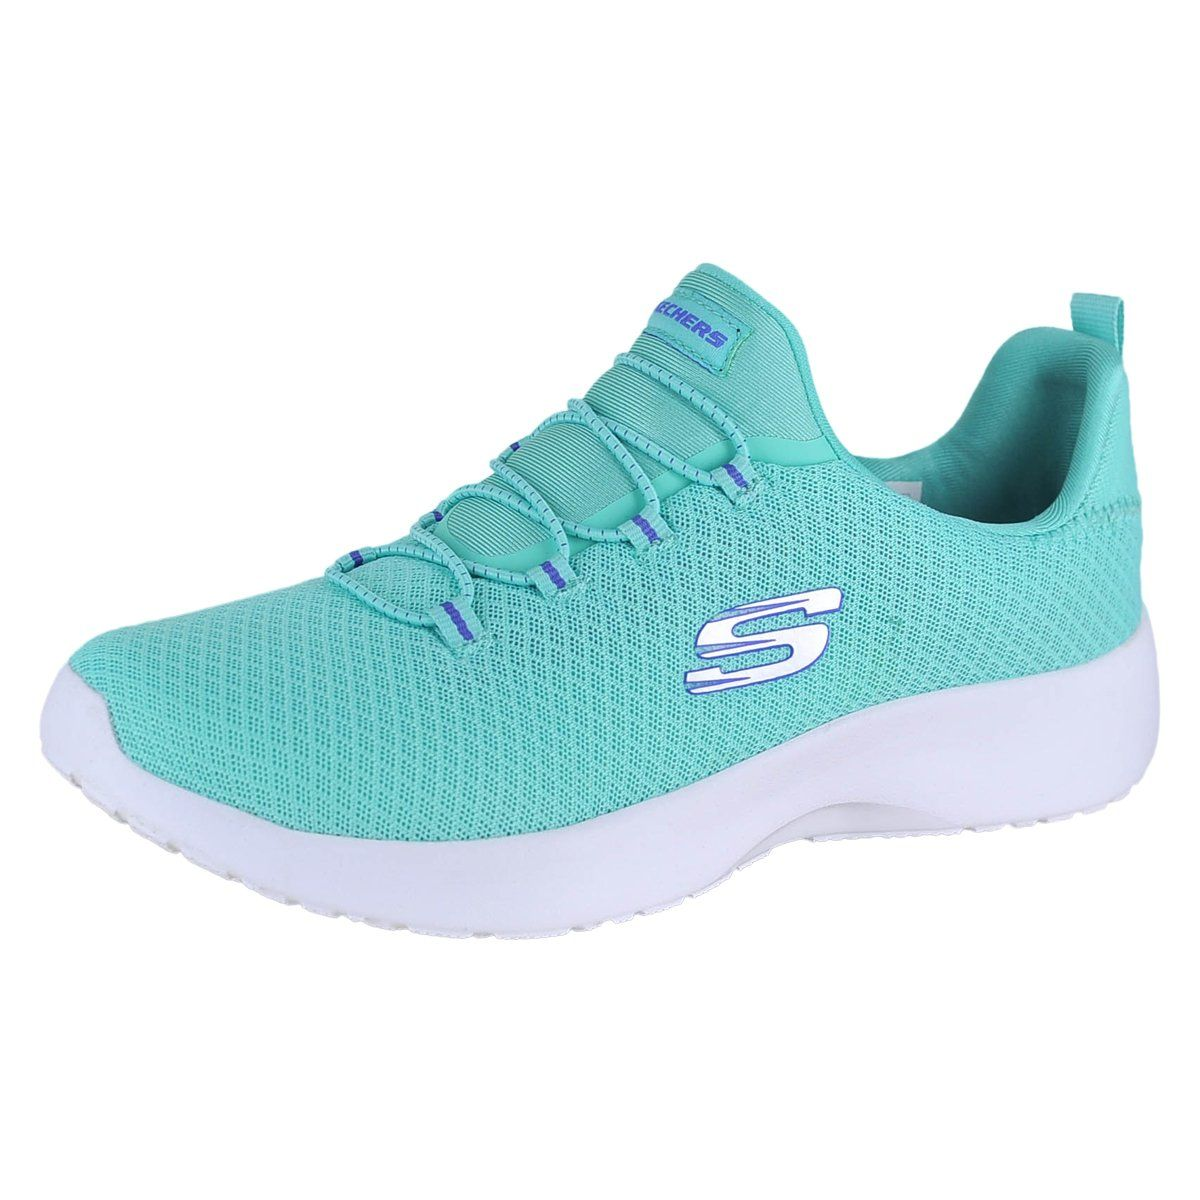 Skechers Dynamight Womens Slip On Sneakers Turquoise 8.5 XOhVltt3gP